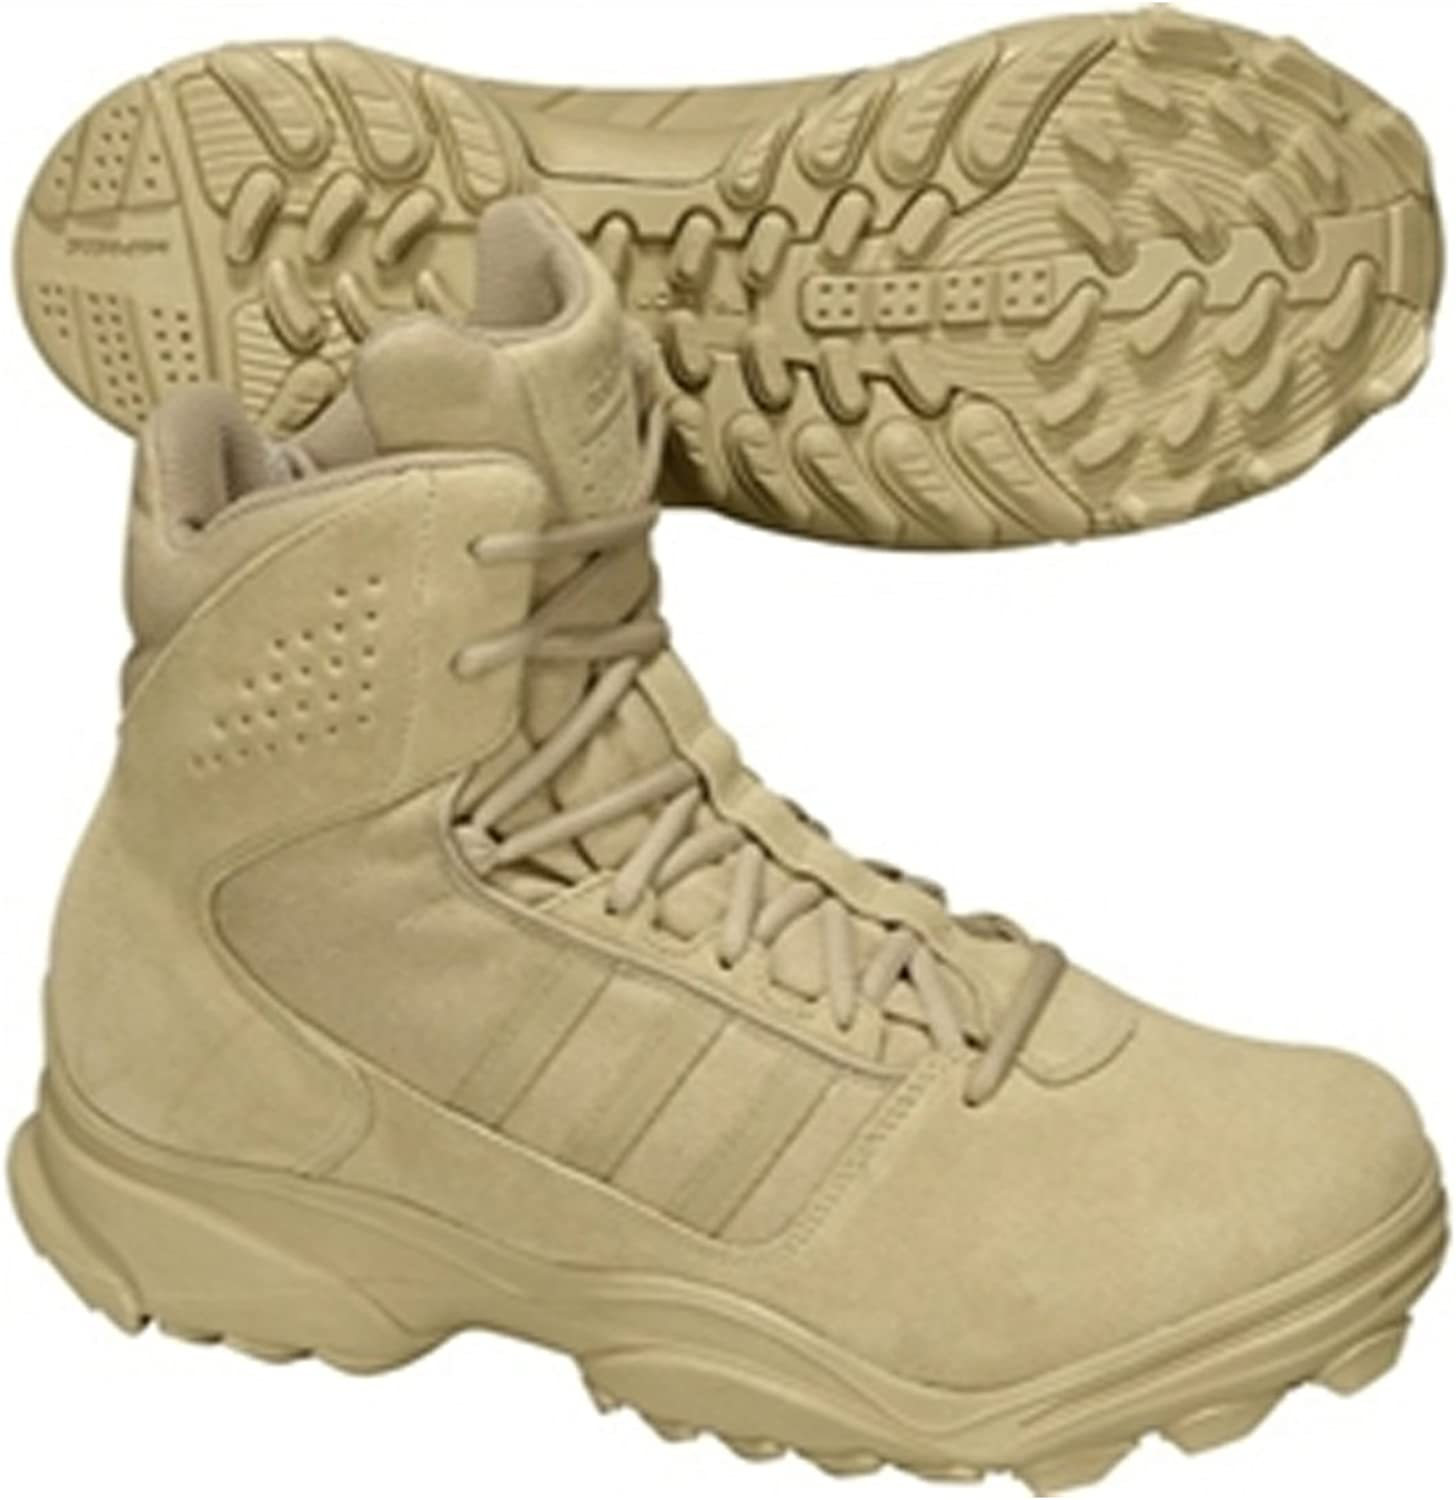 adidas gsg9.3 desert low tactical boots review | Adidou